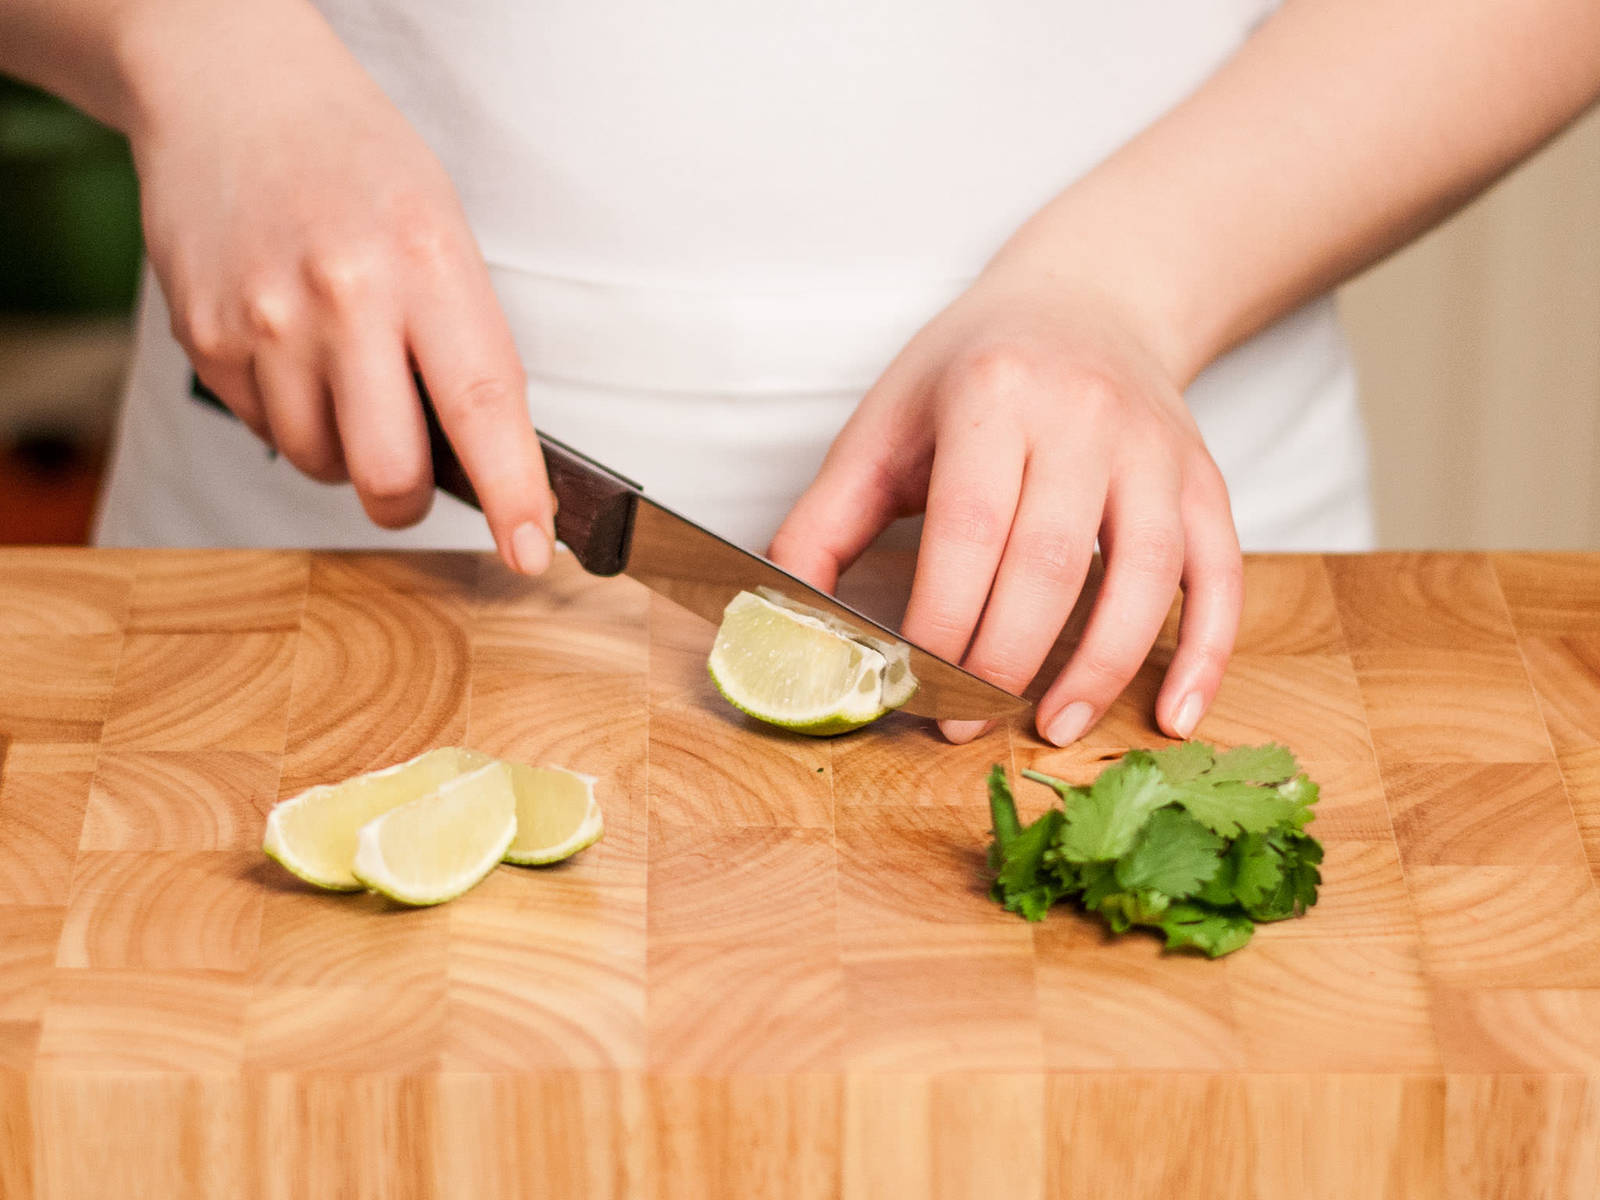 In the meantime, cut limes into wedges and pick cilantro leaves from sprig.